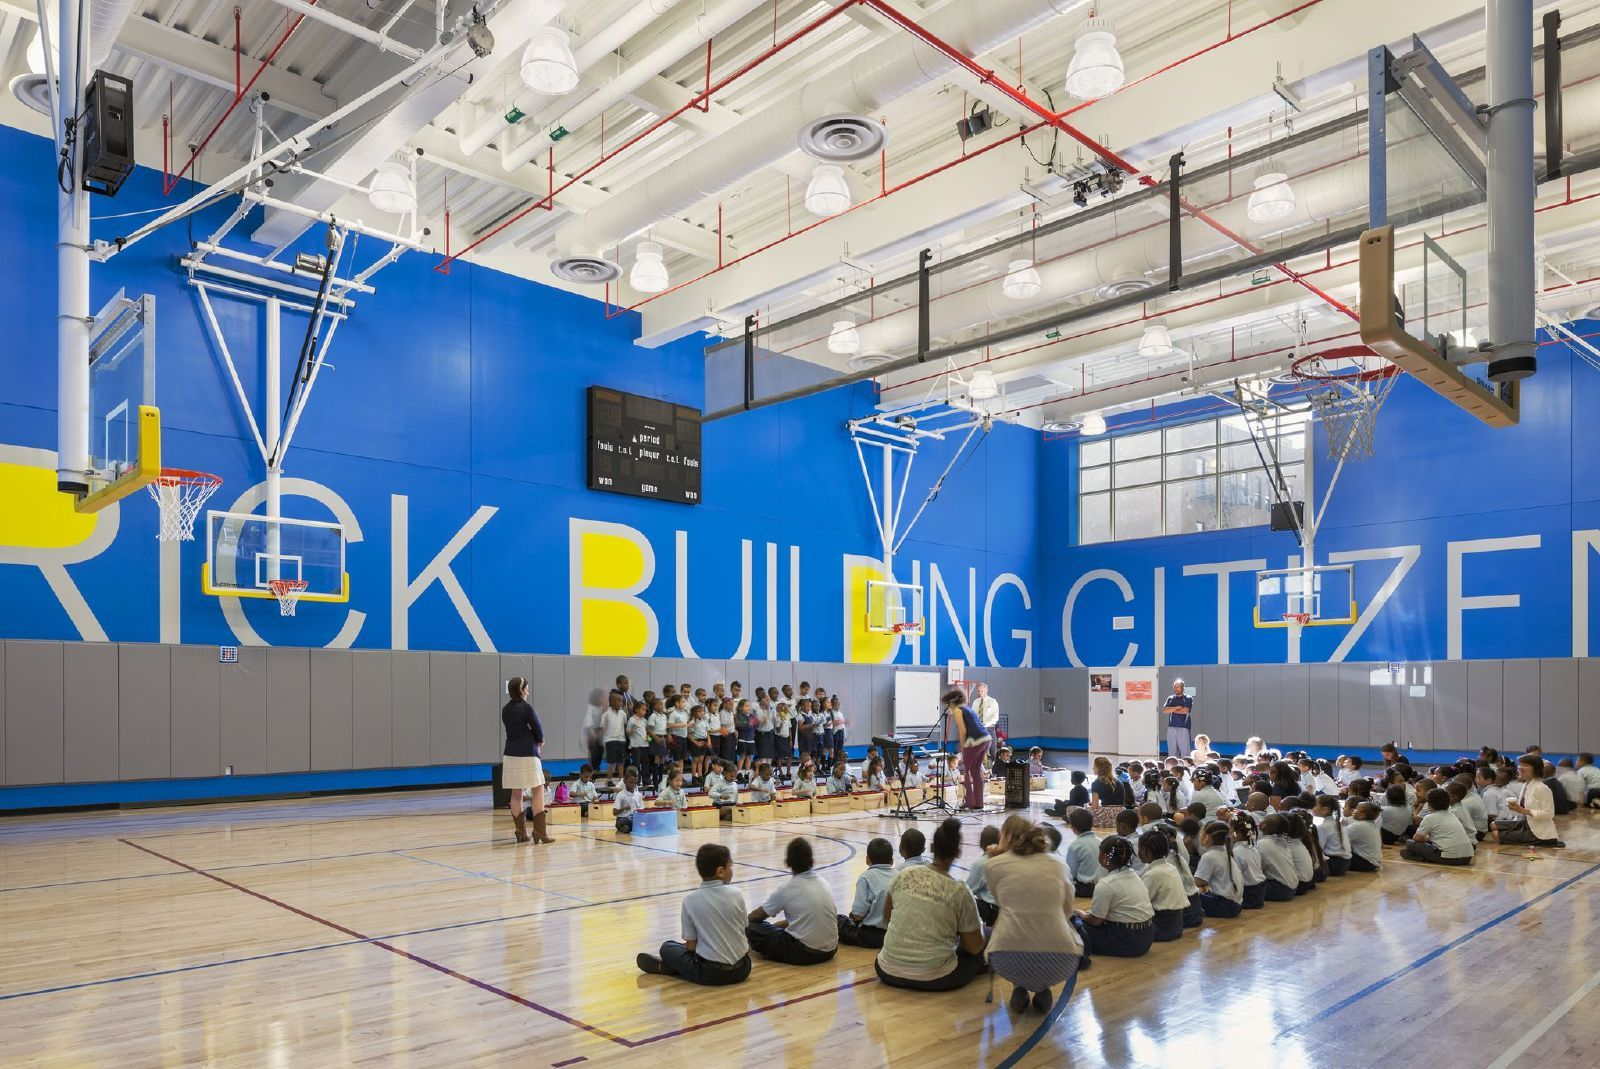 Gym Design Education Projects Win Aia Design Awards Architecture Schools Aec Edtech Charter School School Building Design Gym Architecture